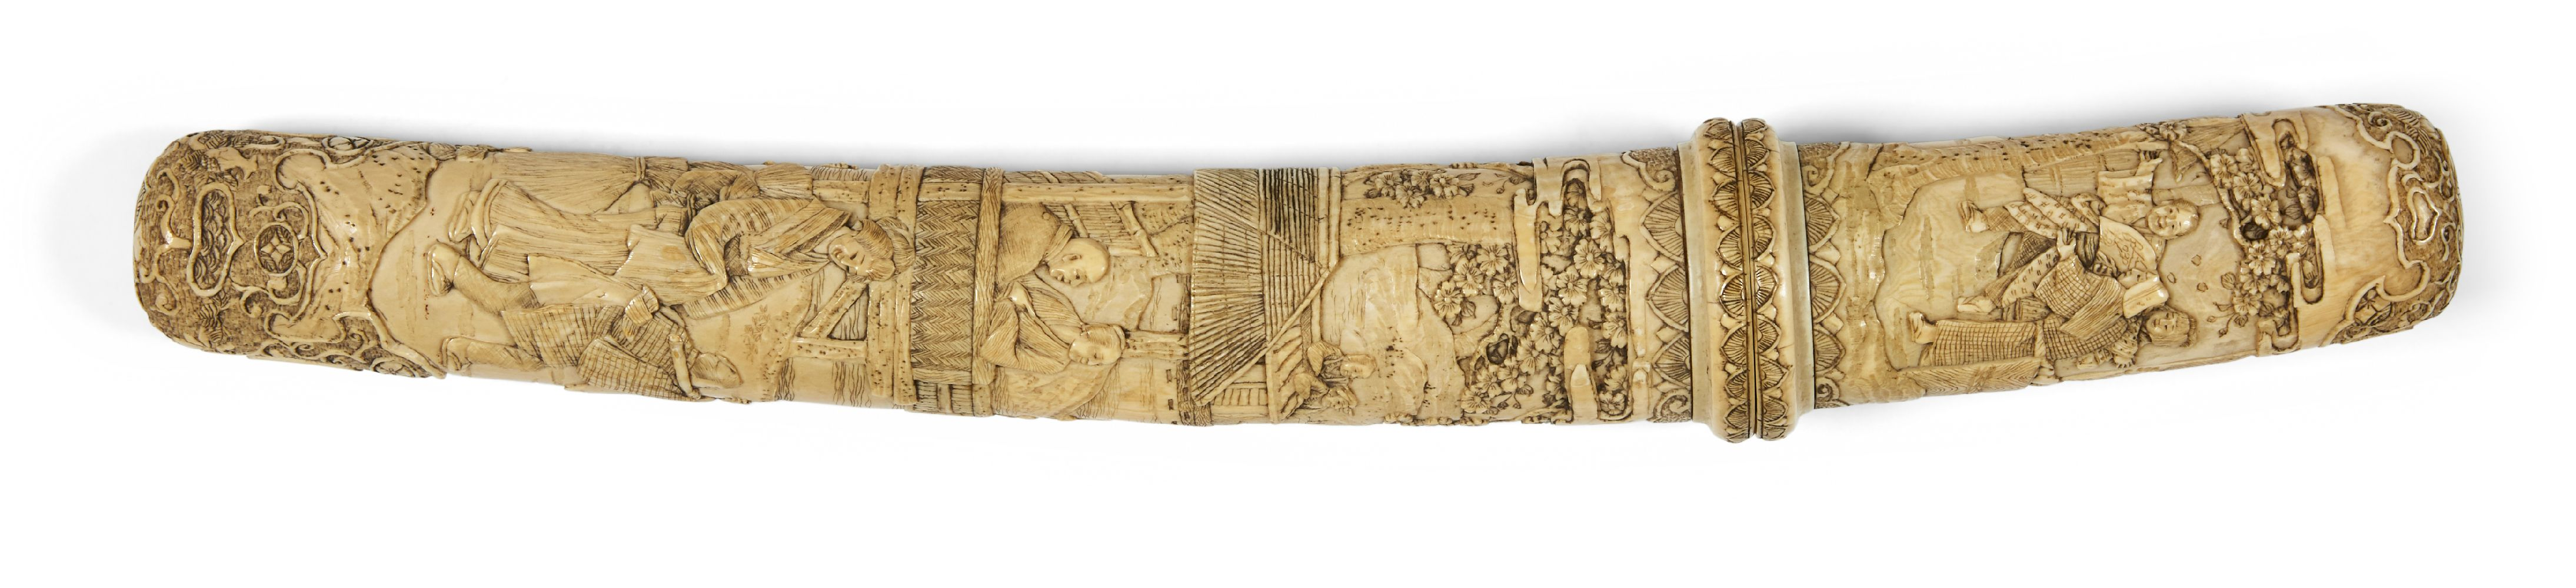 A Japanese carved ivory tanto, Meiji period, in slightly curved form, the scabbard and handle carved - Image 2 of 16